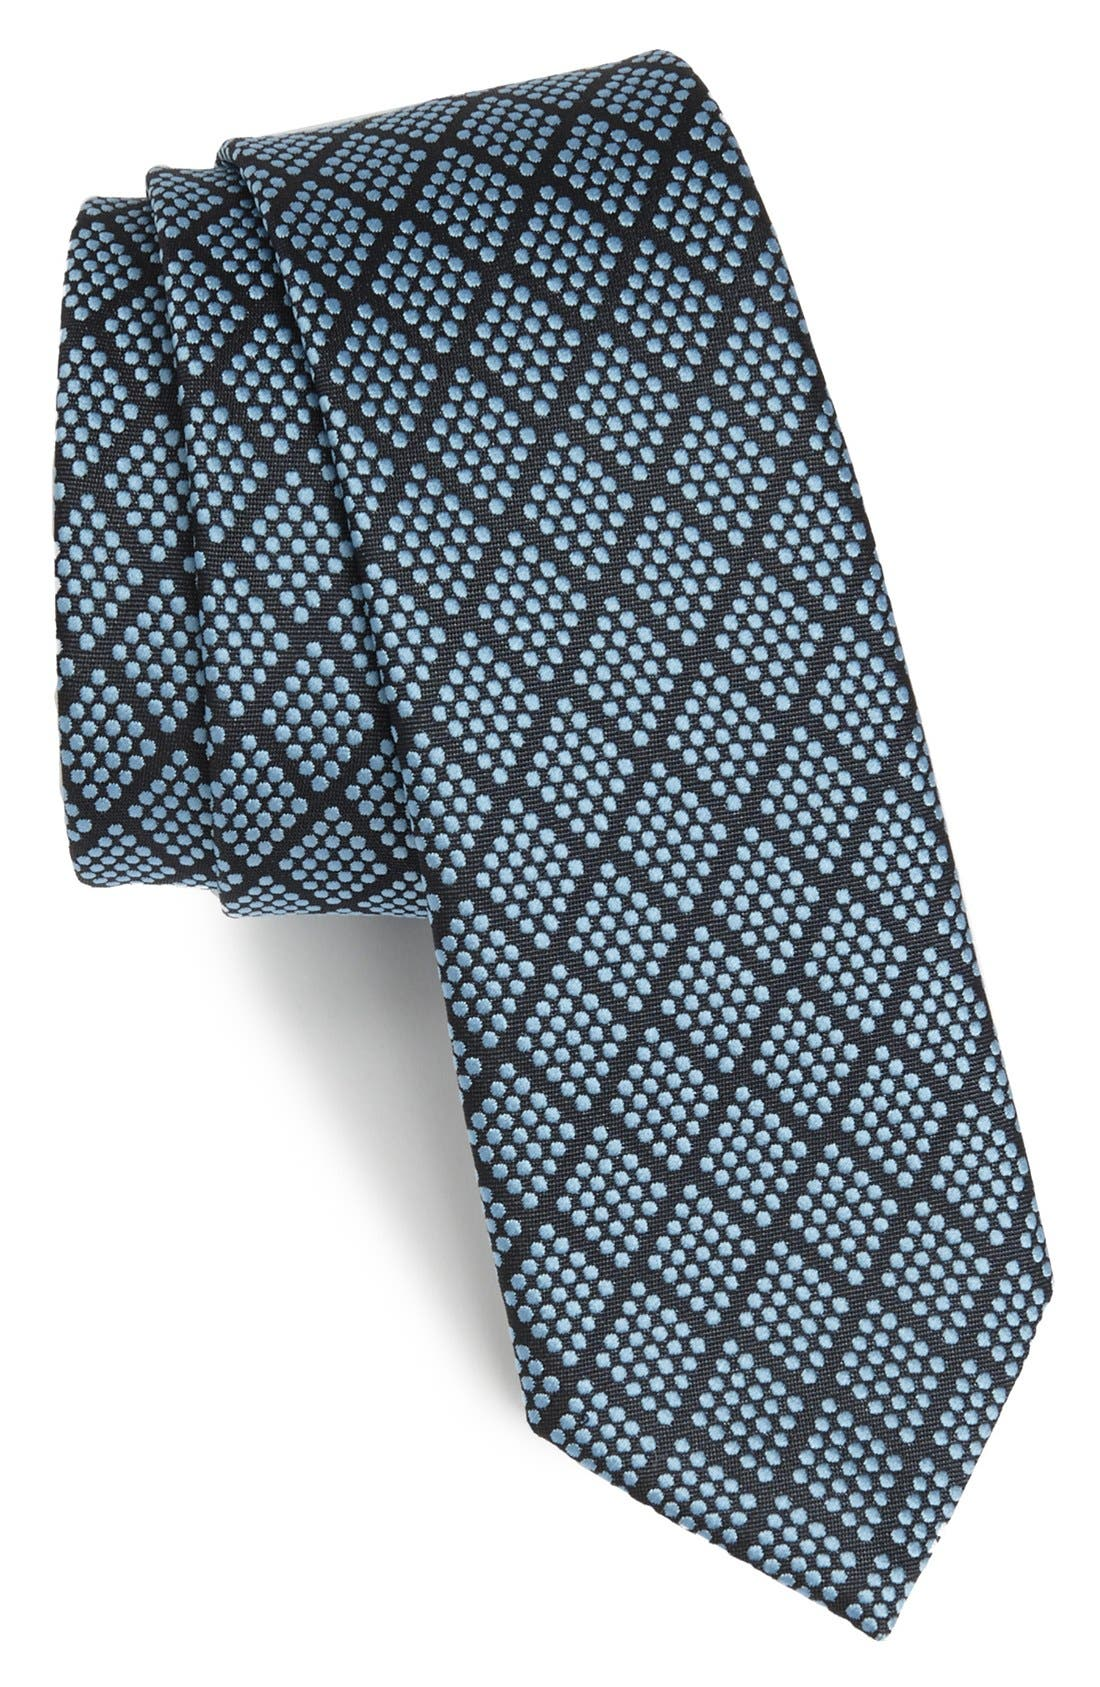 Alternate Image 1 Selected - Z Zegna Woven Silk Blend Tie